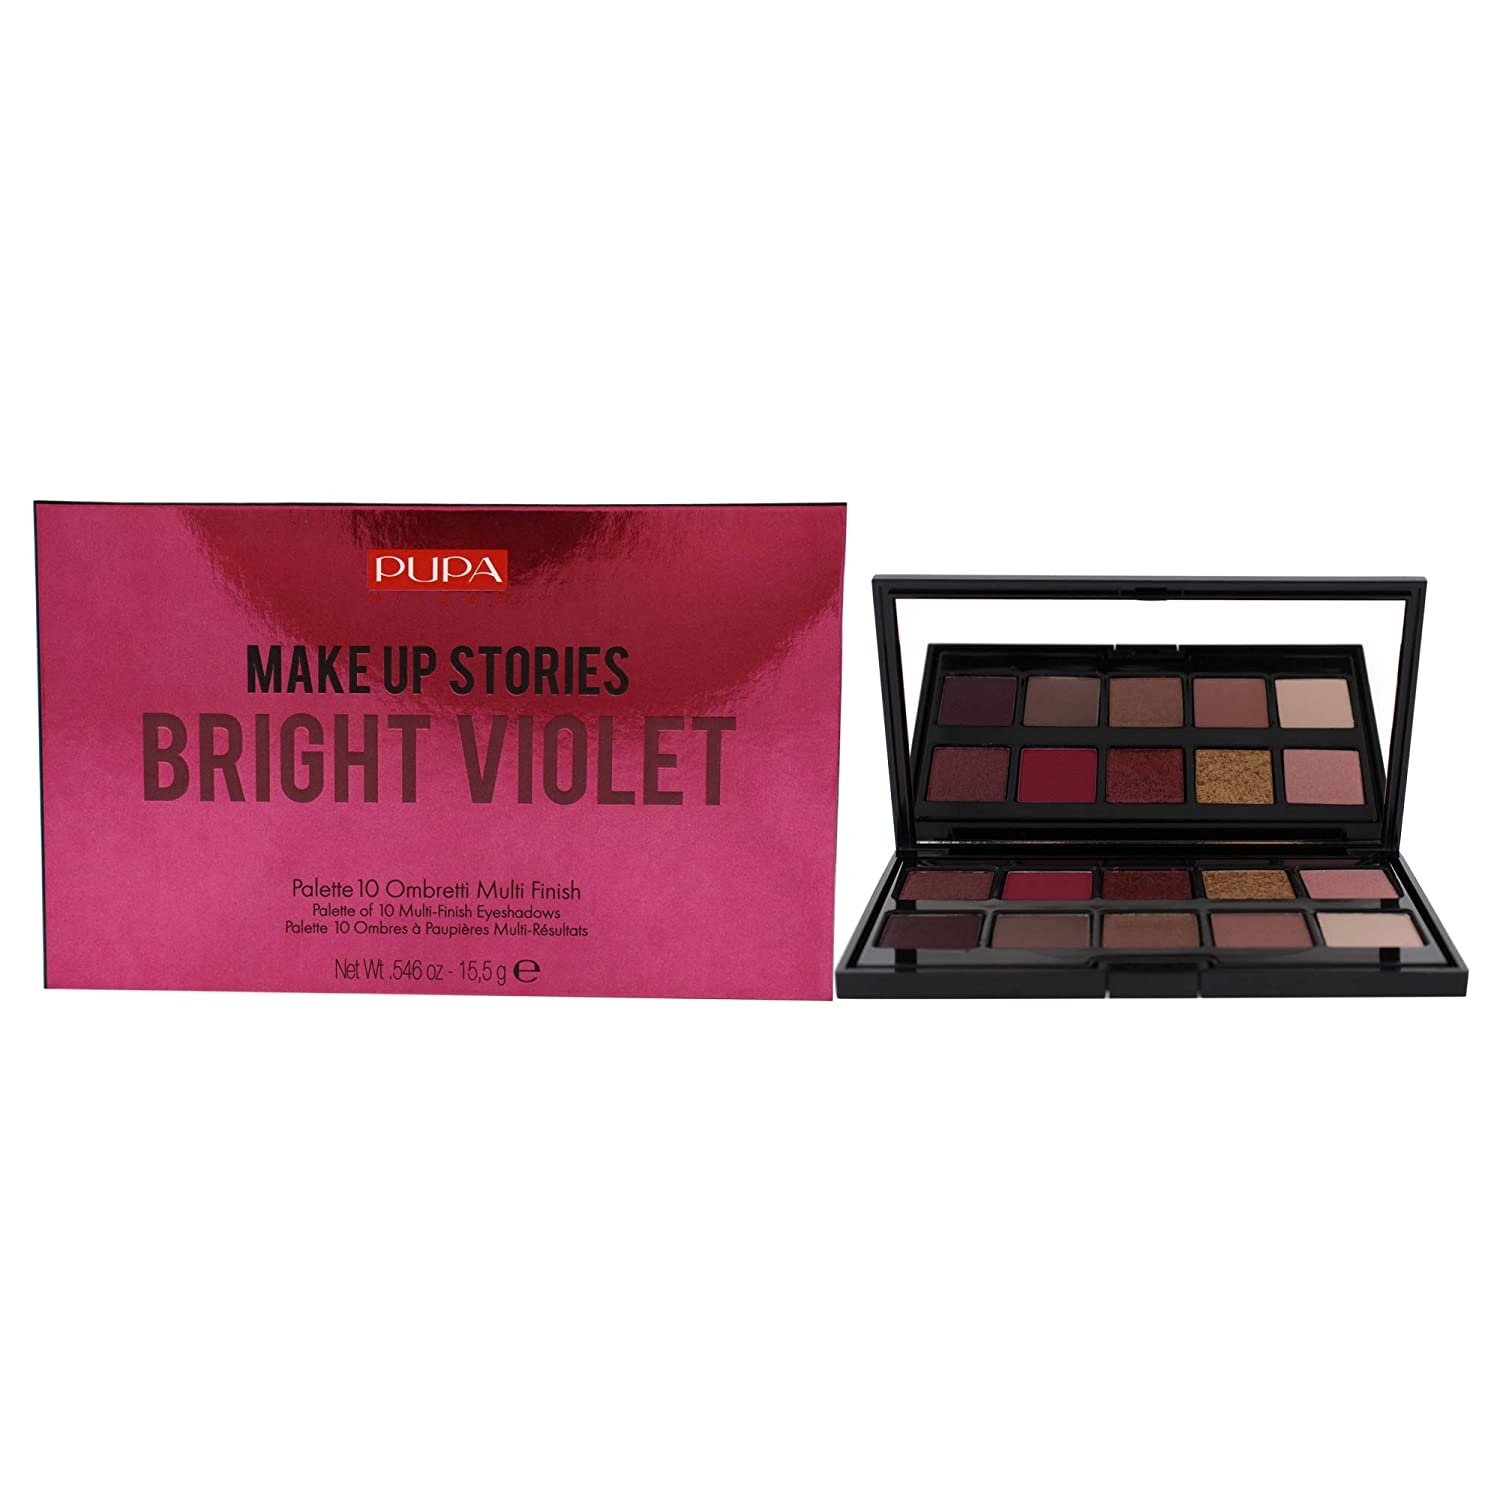 Pupa Milano Make Up Stories Eyeshadow Palette – Palette Of 10 Eyeshadows For An Out-Of-The-Box Mauve Look – Extraordinary Coverage and Perfect Adherence – 003 Bright Violet – 0.63 Oz